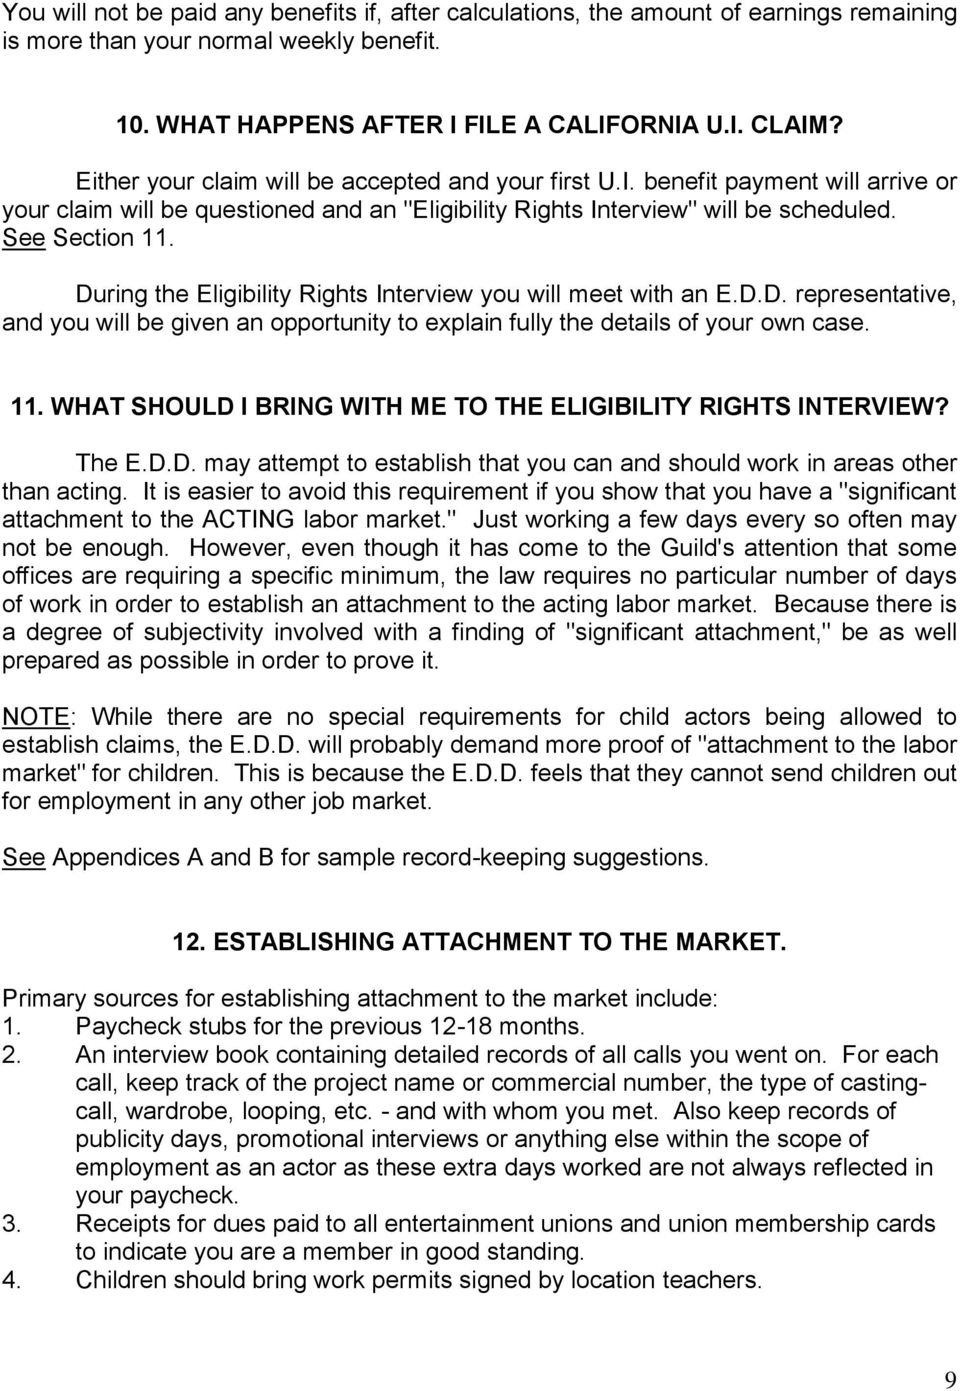 During the Eligibility Rights Interview you will meet with an E.D.D. representative, and you will be given an opportunity to explain fully the details of your own case. 11.